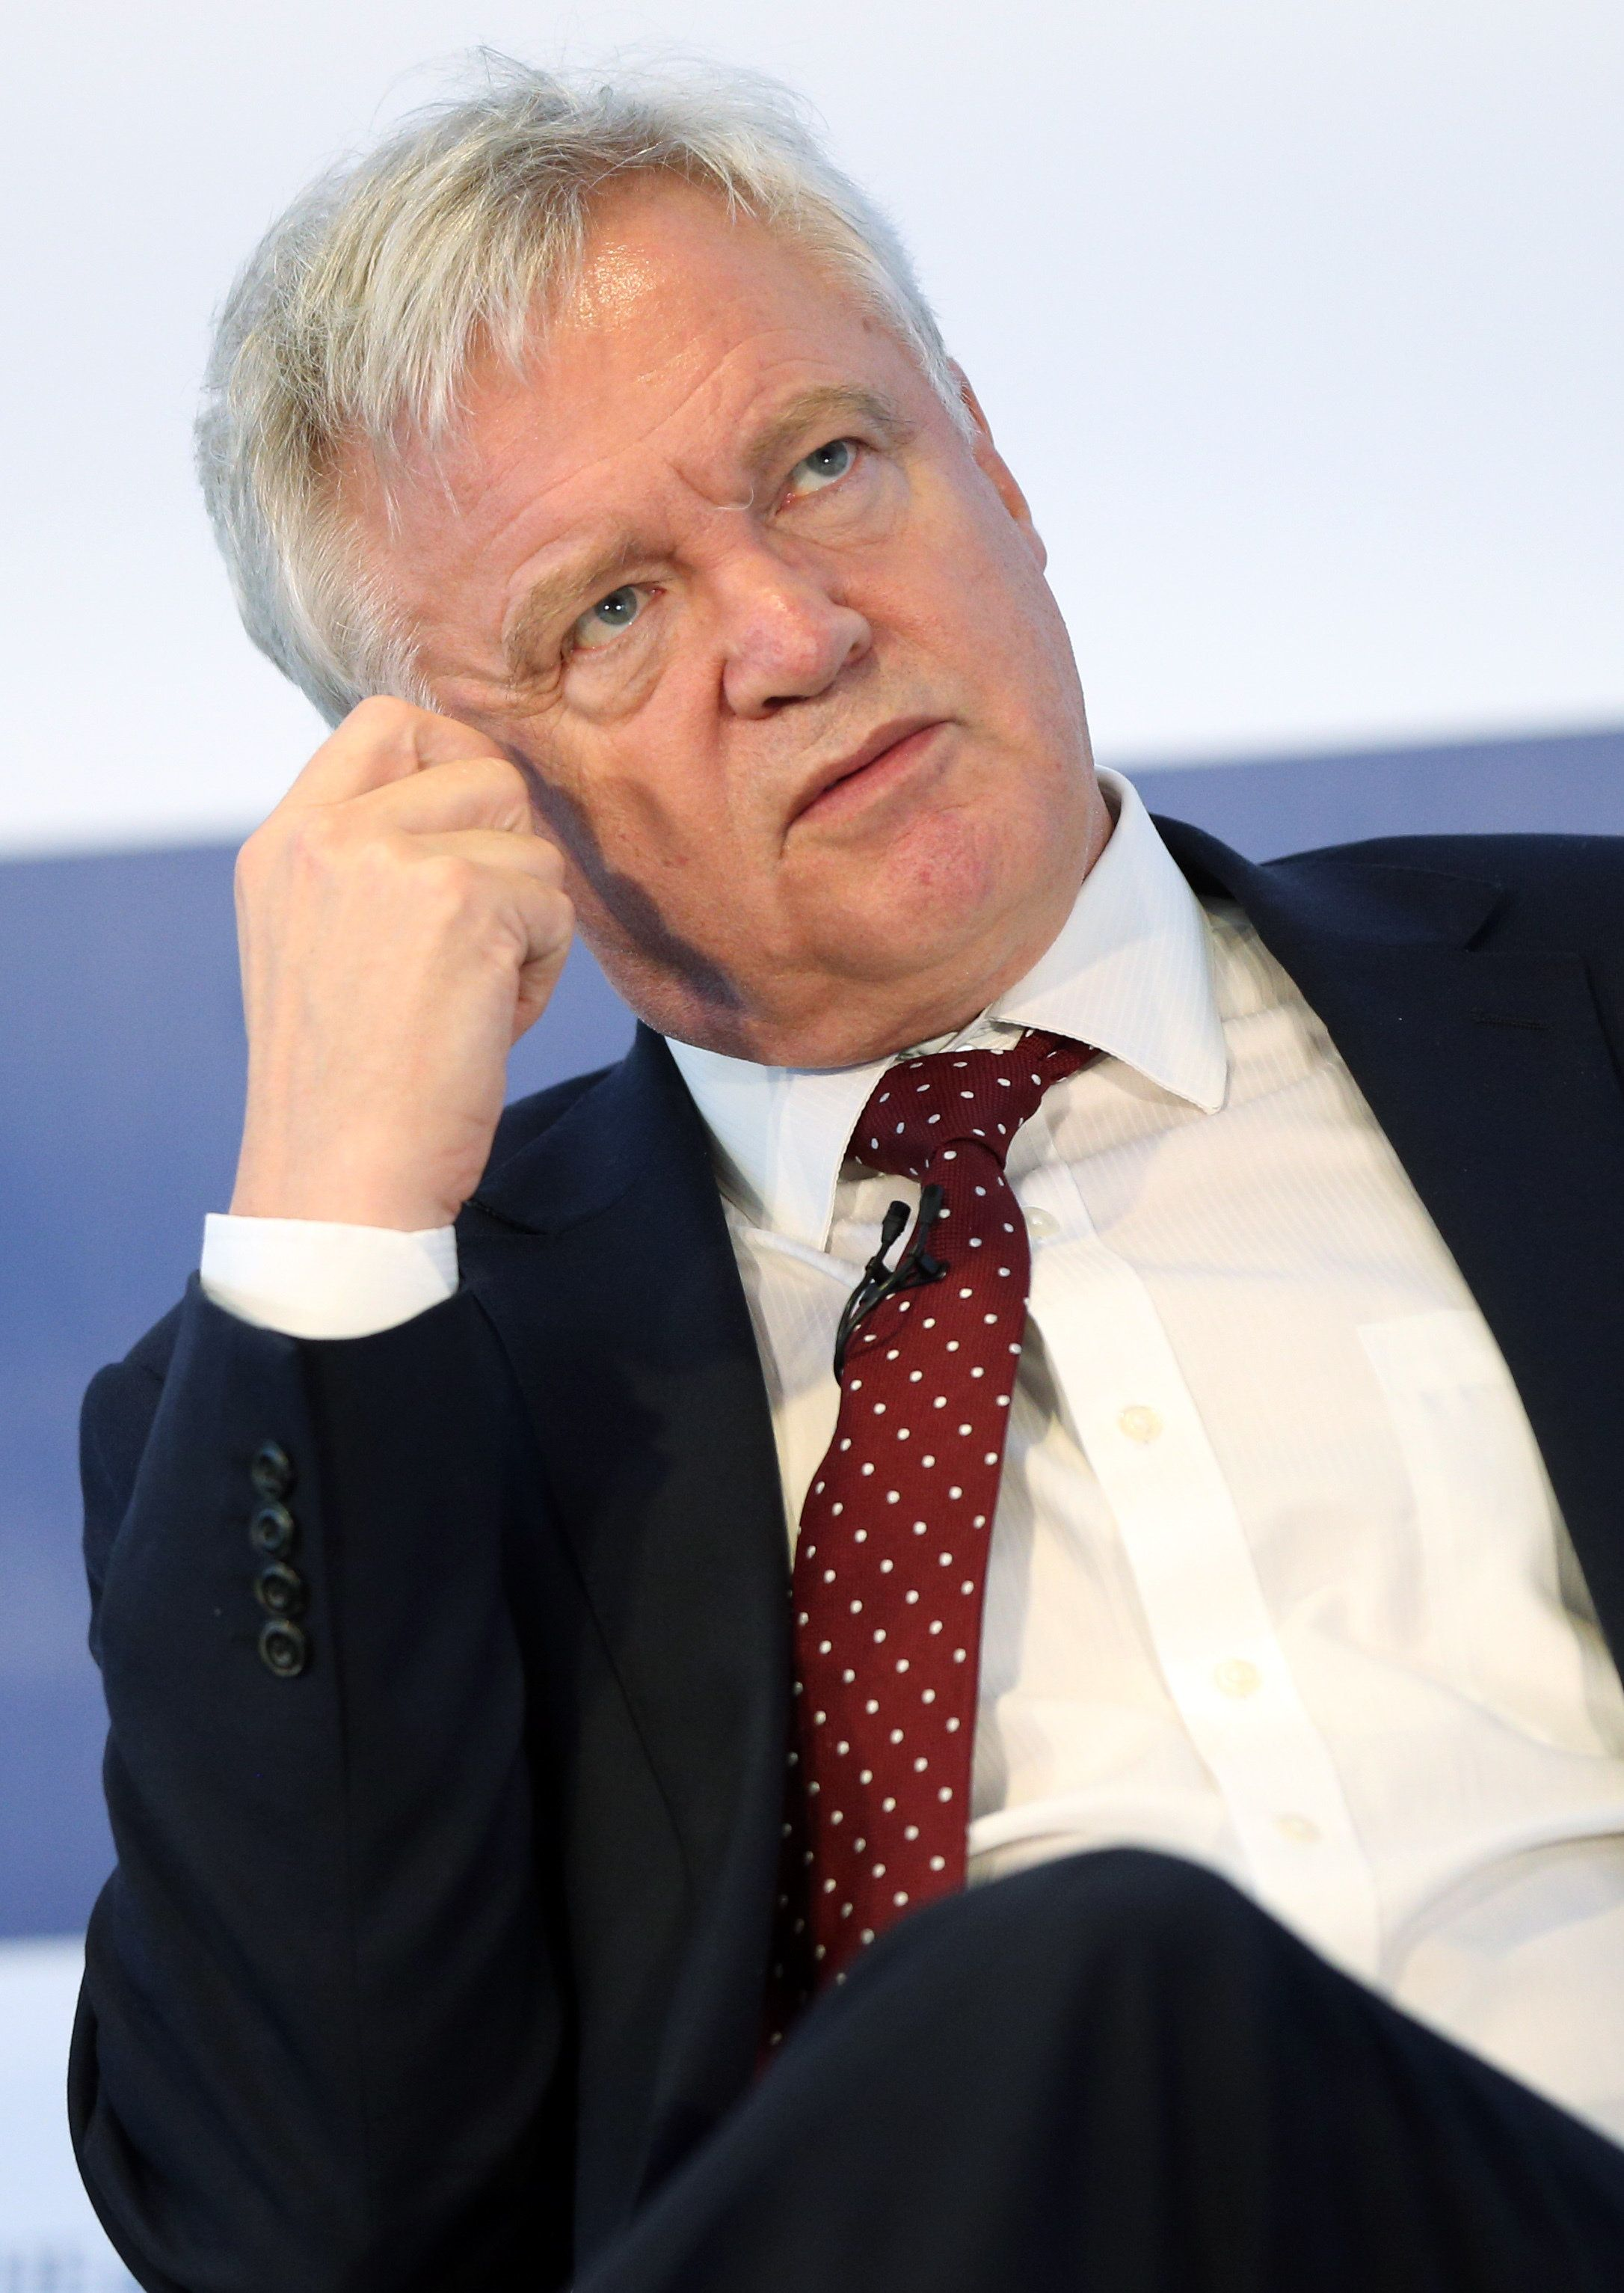 Brexit Secretary David Davis may not be keen on the suggestions for a Brexit hit